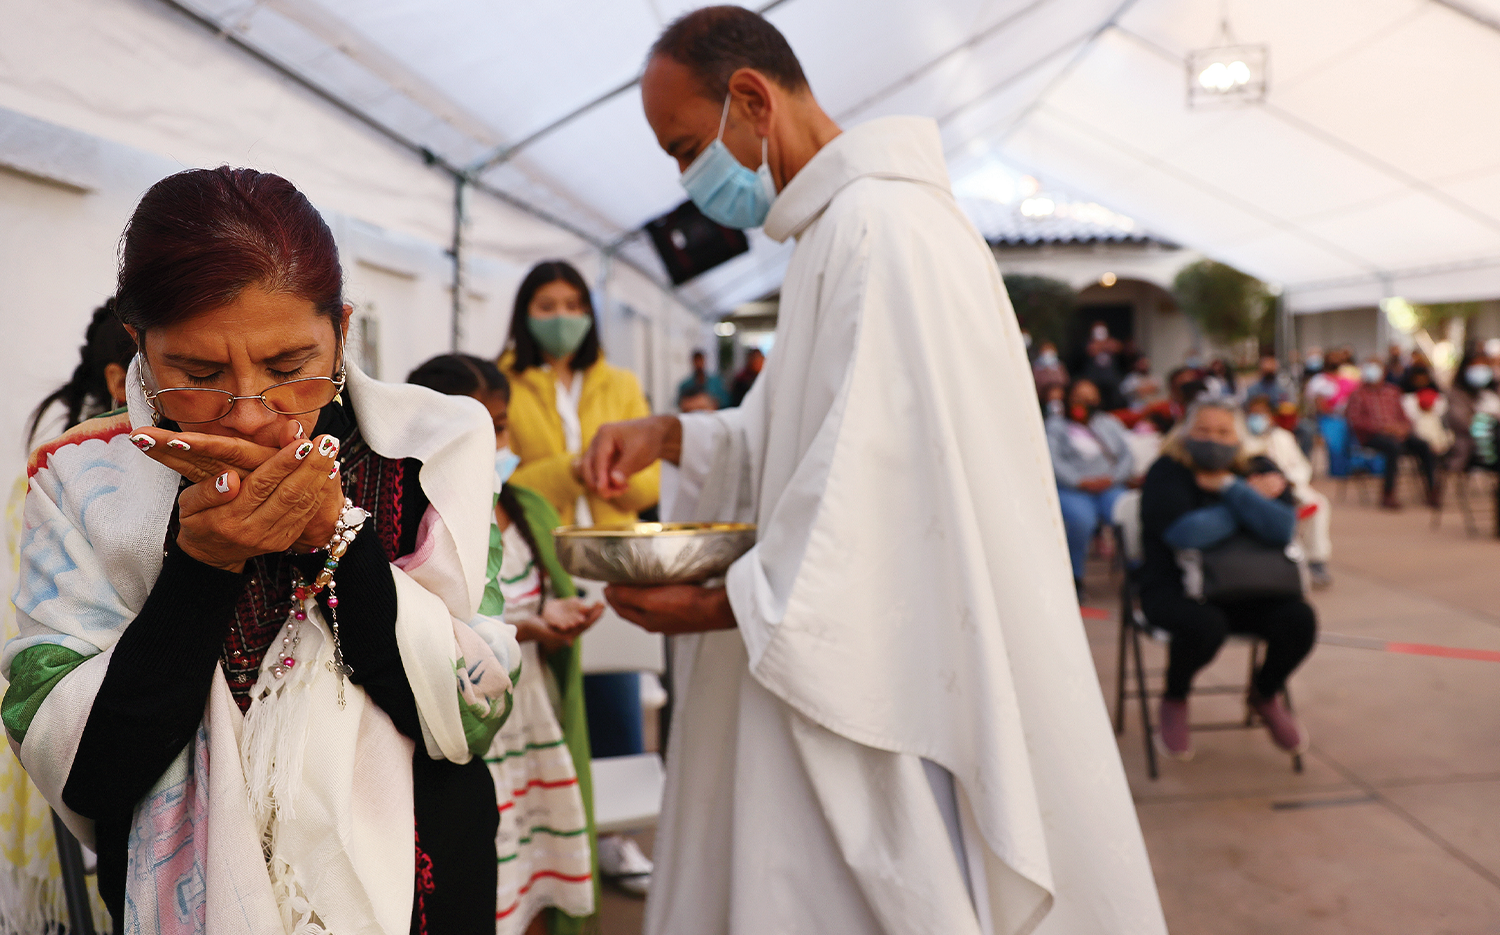 The Rev. Arturo Corral distributes Communion during an outdoor Mass at the historic Our Lady Queen of Angels Church in Los Angeles.